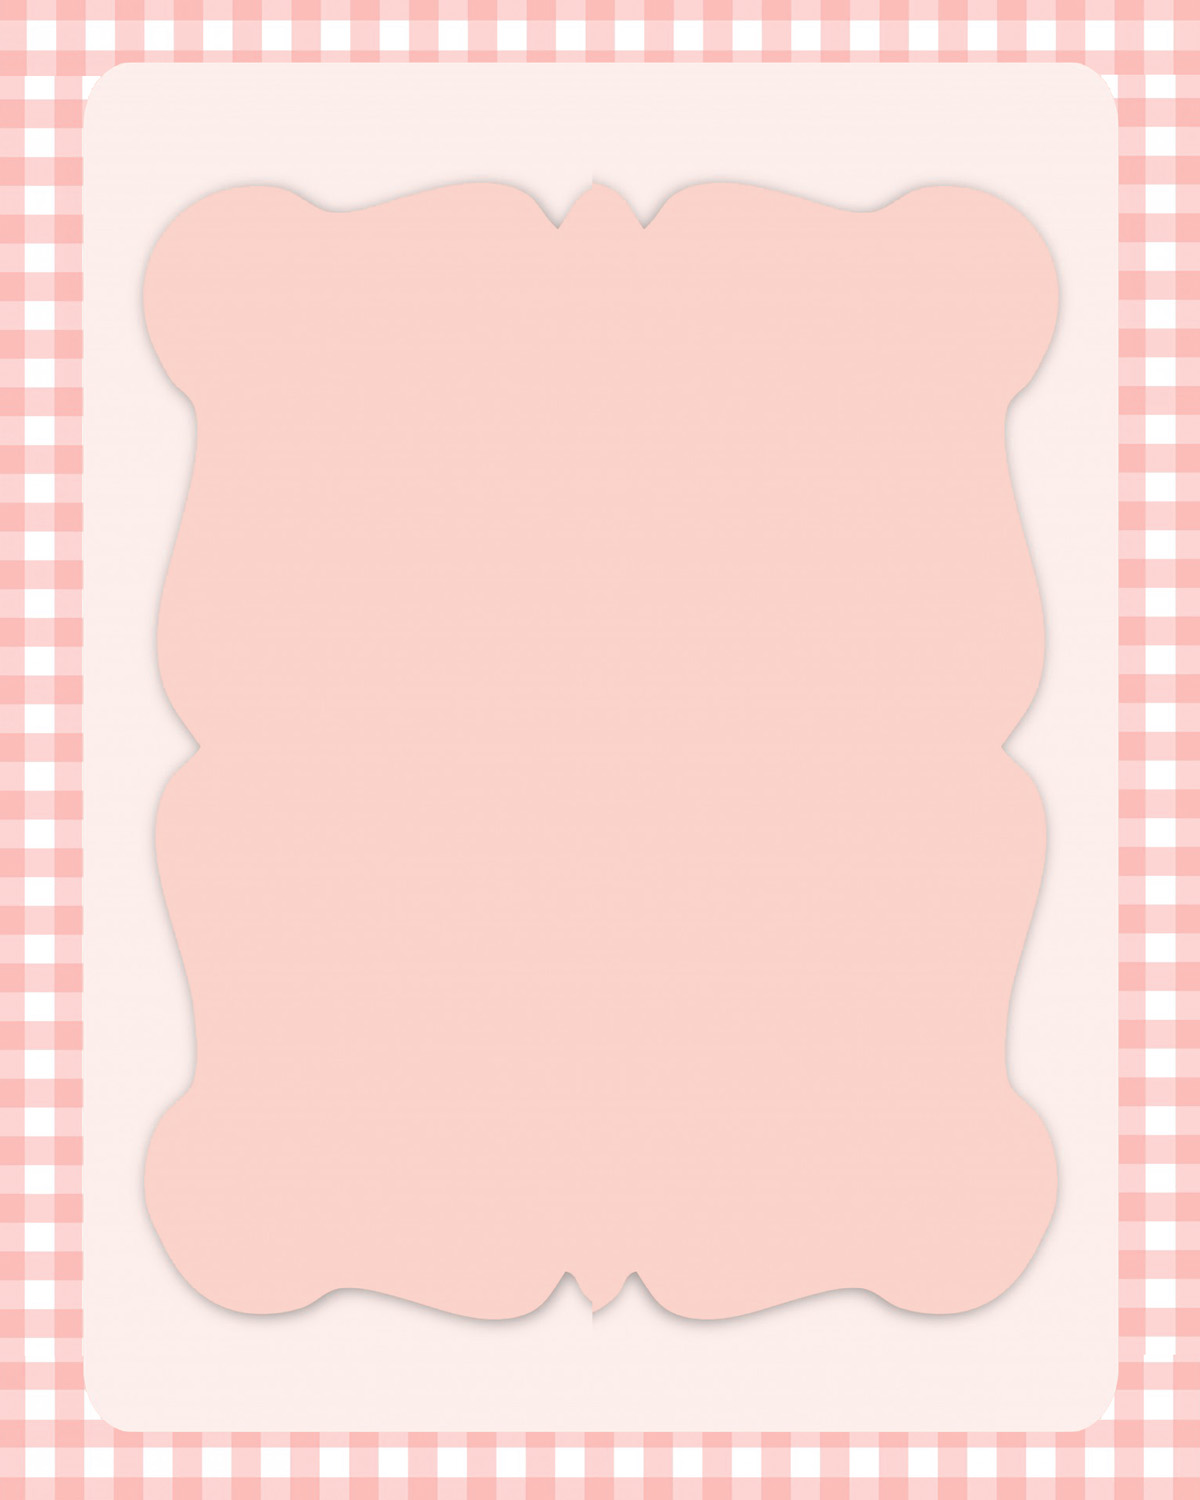 pink frame with checkered border